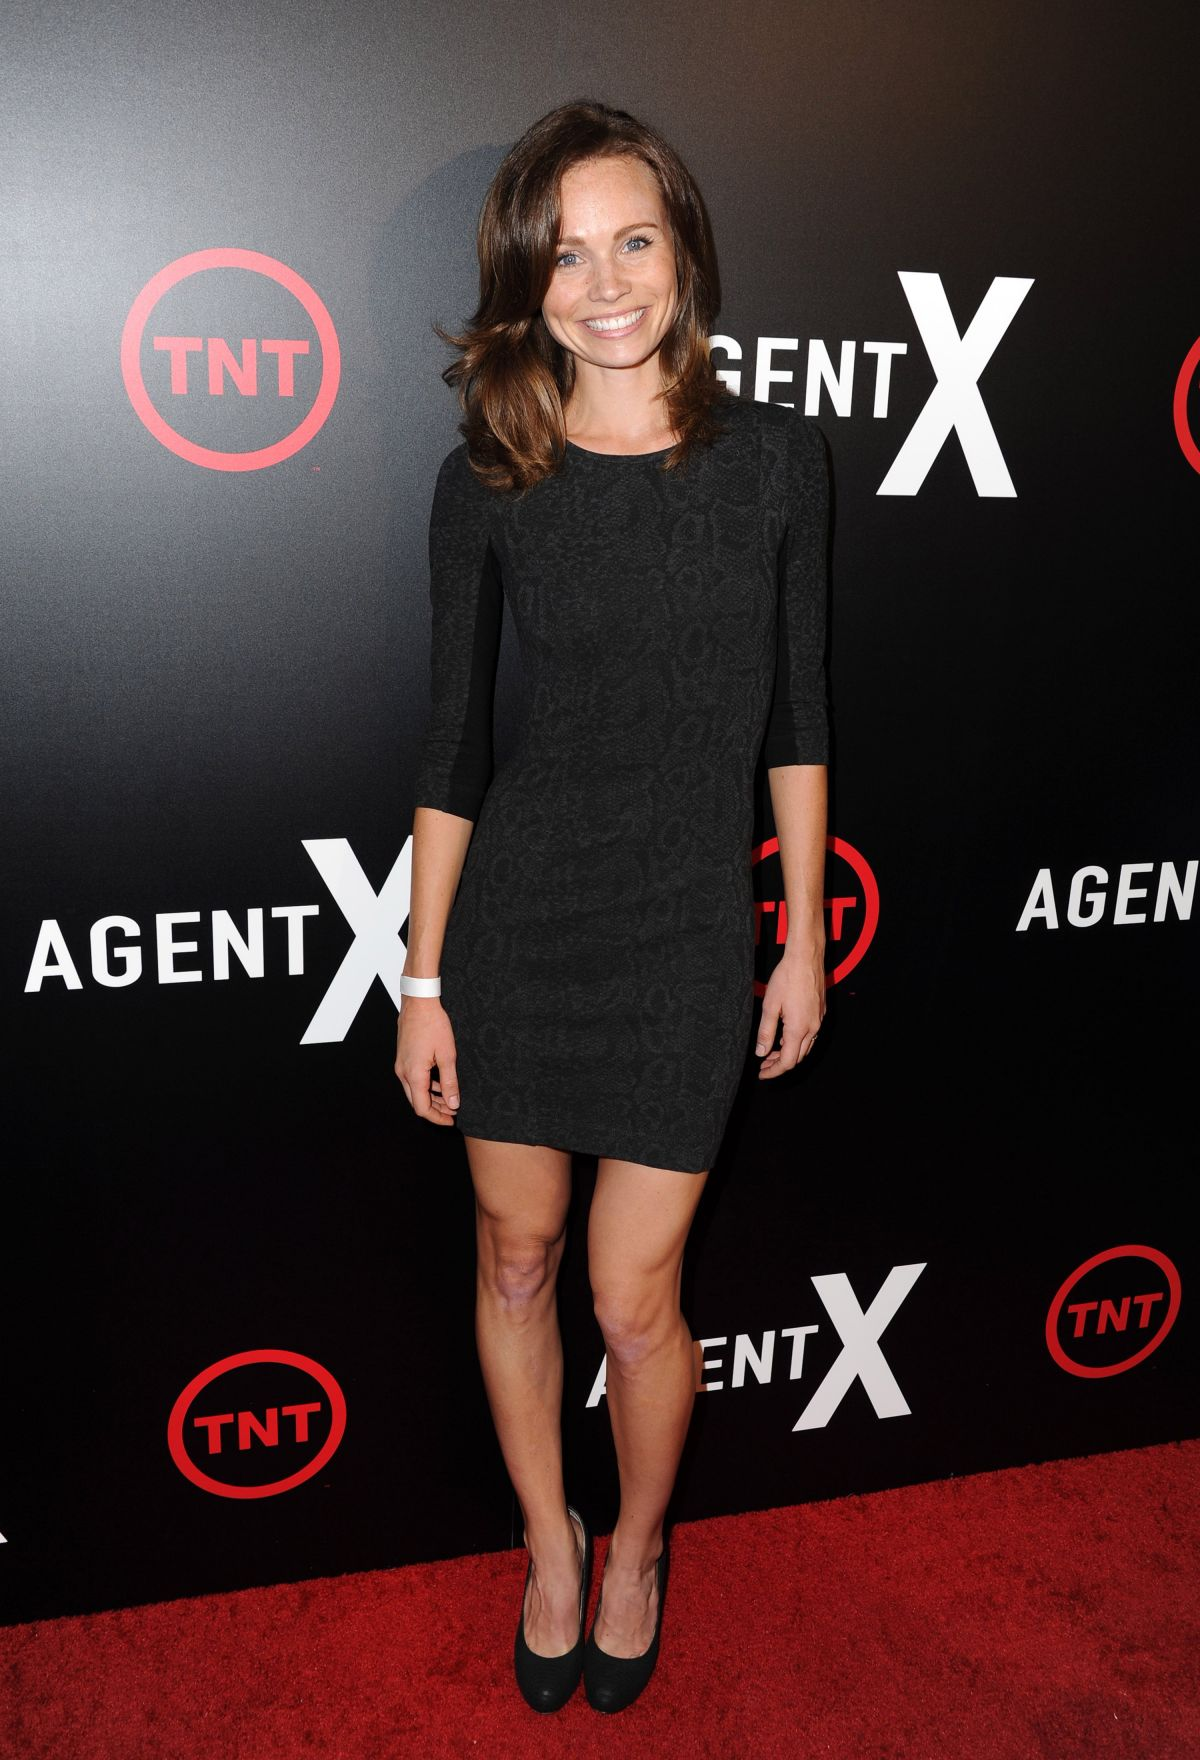 KATIE COOPER at Agent X Premiere in West Hollywood 10/20/2015